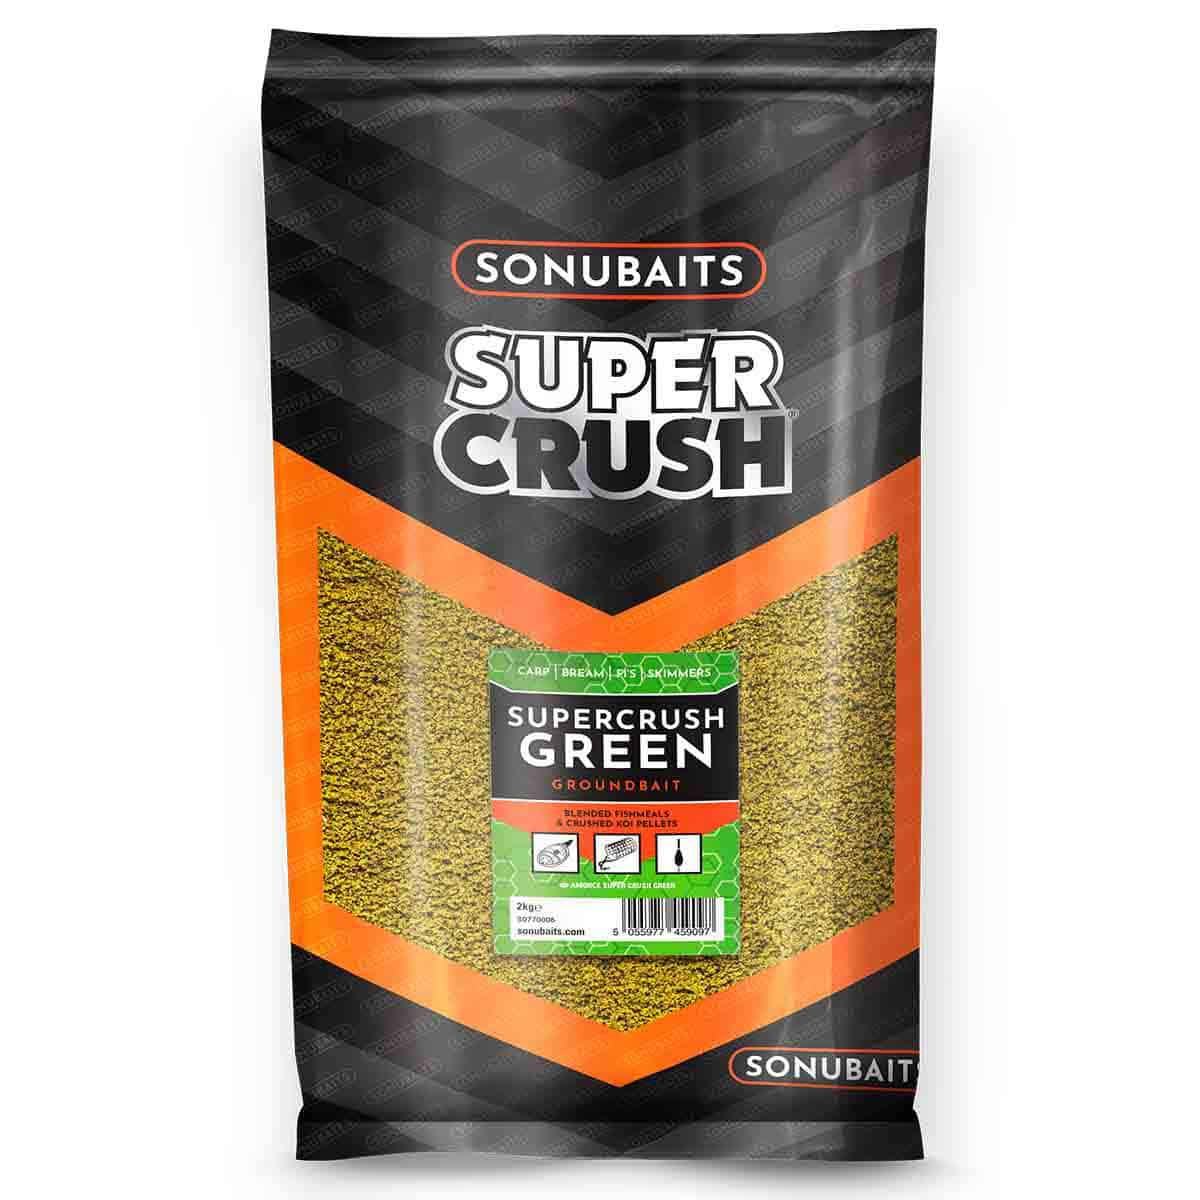 Sonubaits Supercrush Green Groundbait